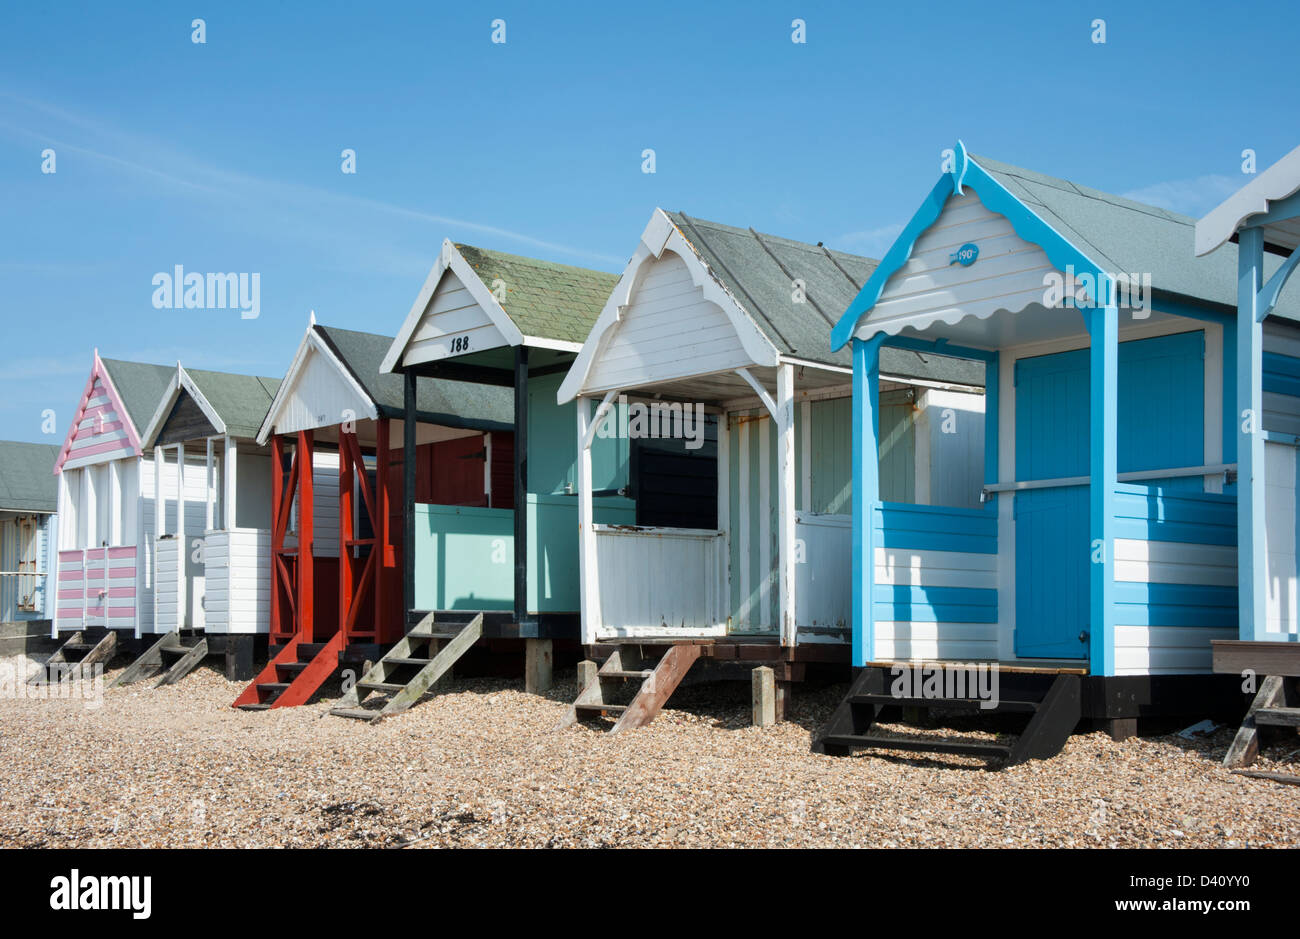 Colorful Beach Huts at Southend, Essex, UK. - Stock Image